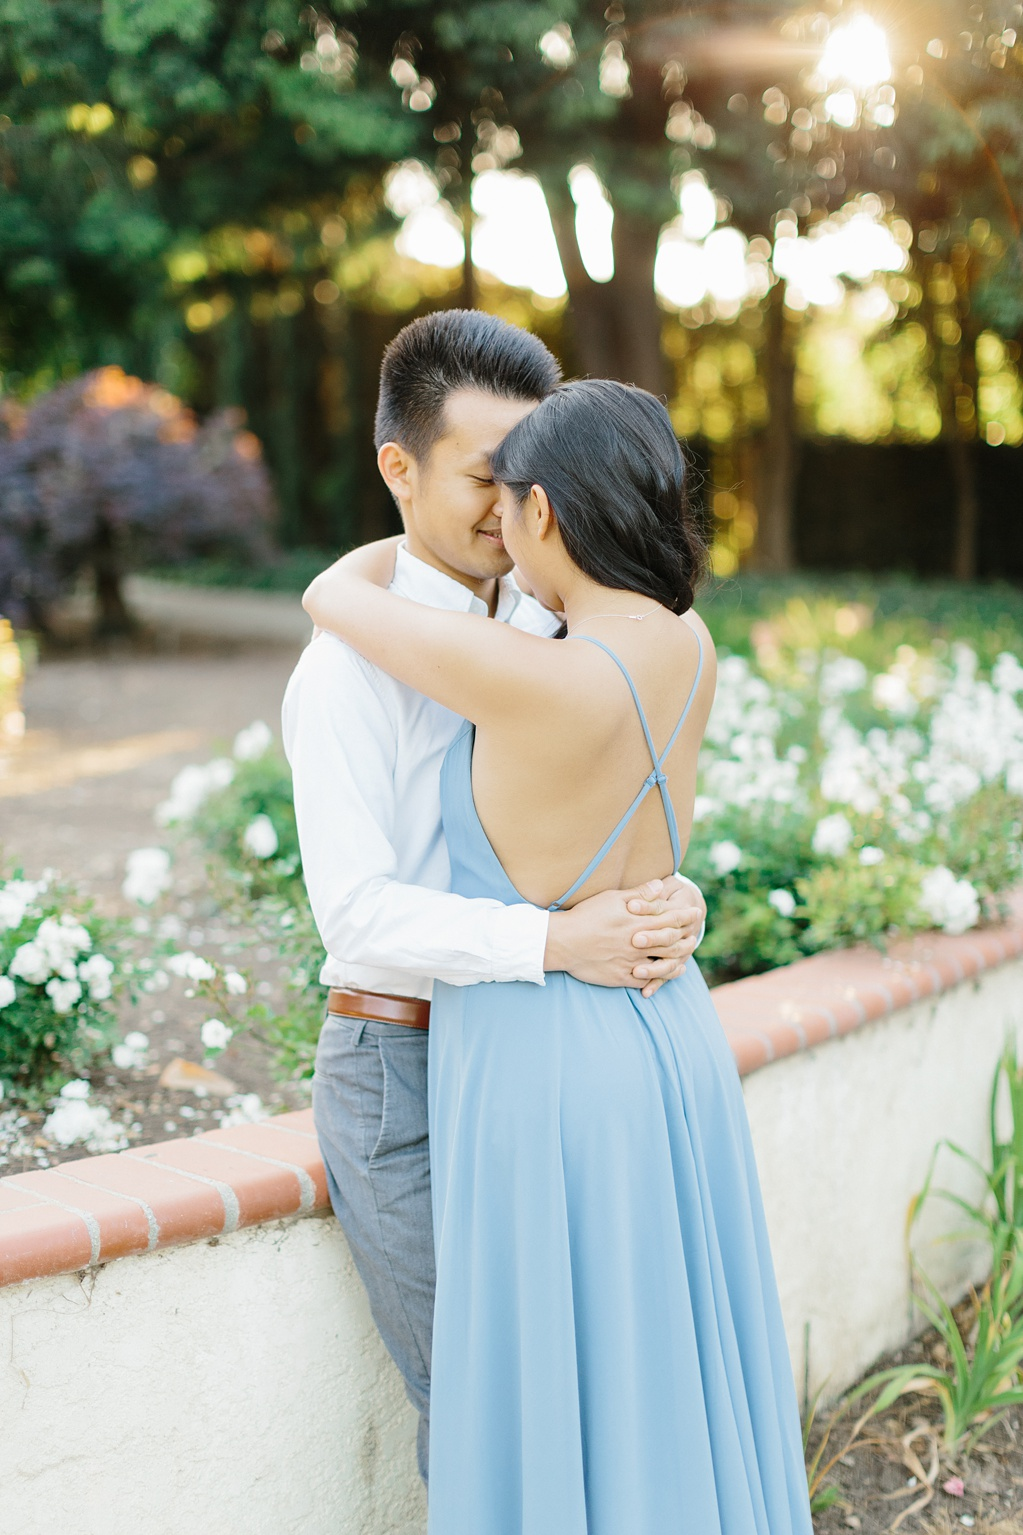 Elegant rose garden engagement shoot at Lacy Park in Pasadena by LA wedding photographer-Madison Ellis Photography (41)